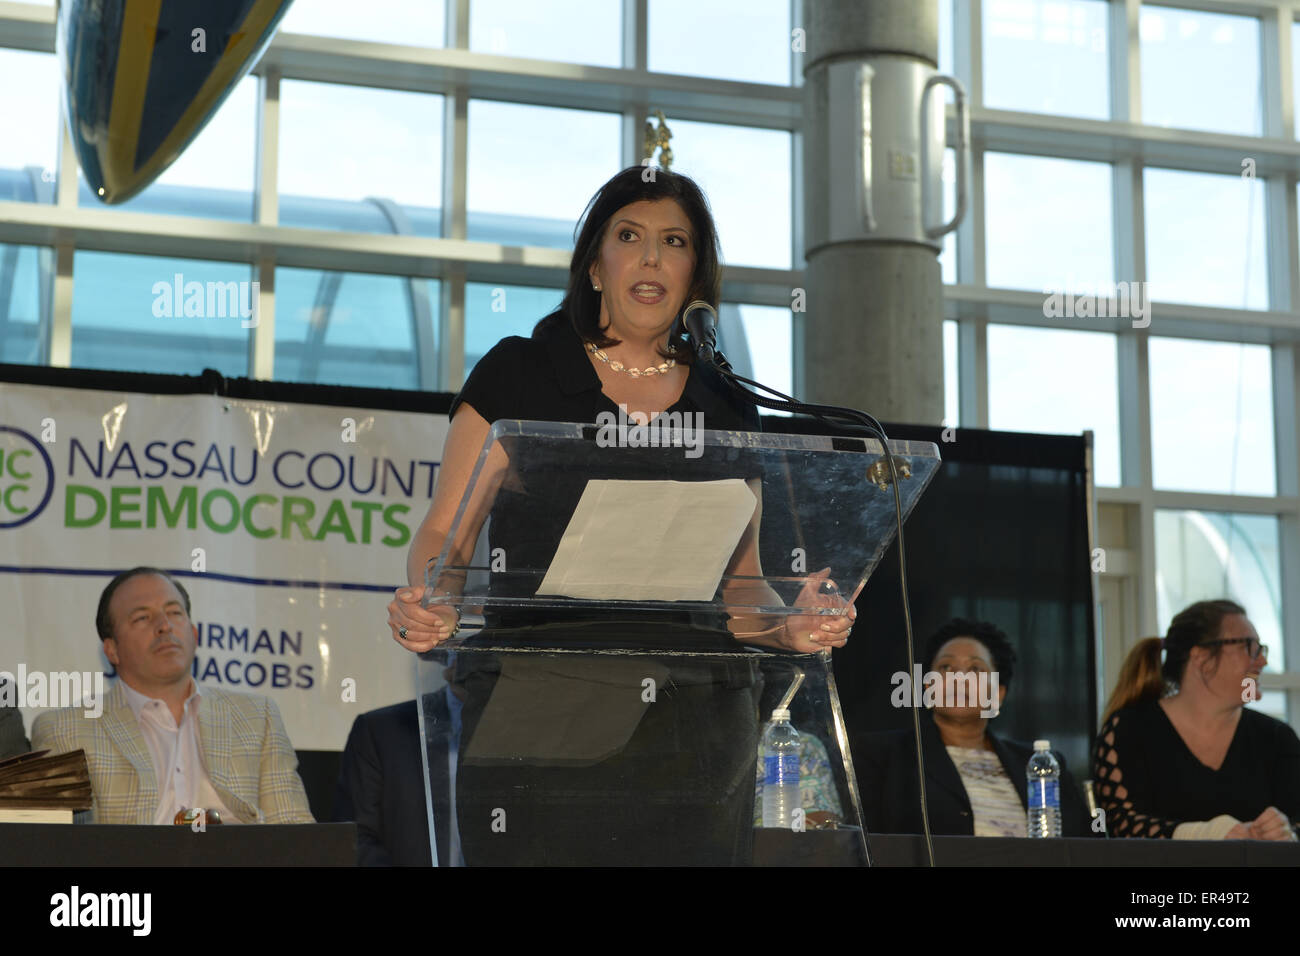 Garden City, New York, USA. 26th May, 2015. MADELINE SIGNAS, Acting District Attorney of Nassau County, speaks at - Stock Image